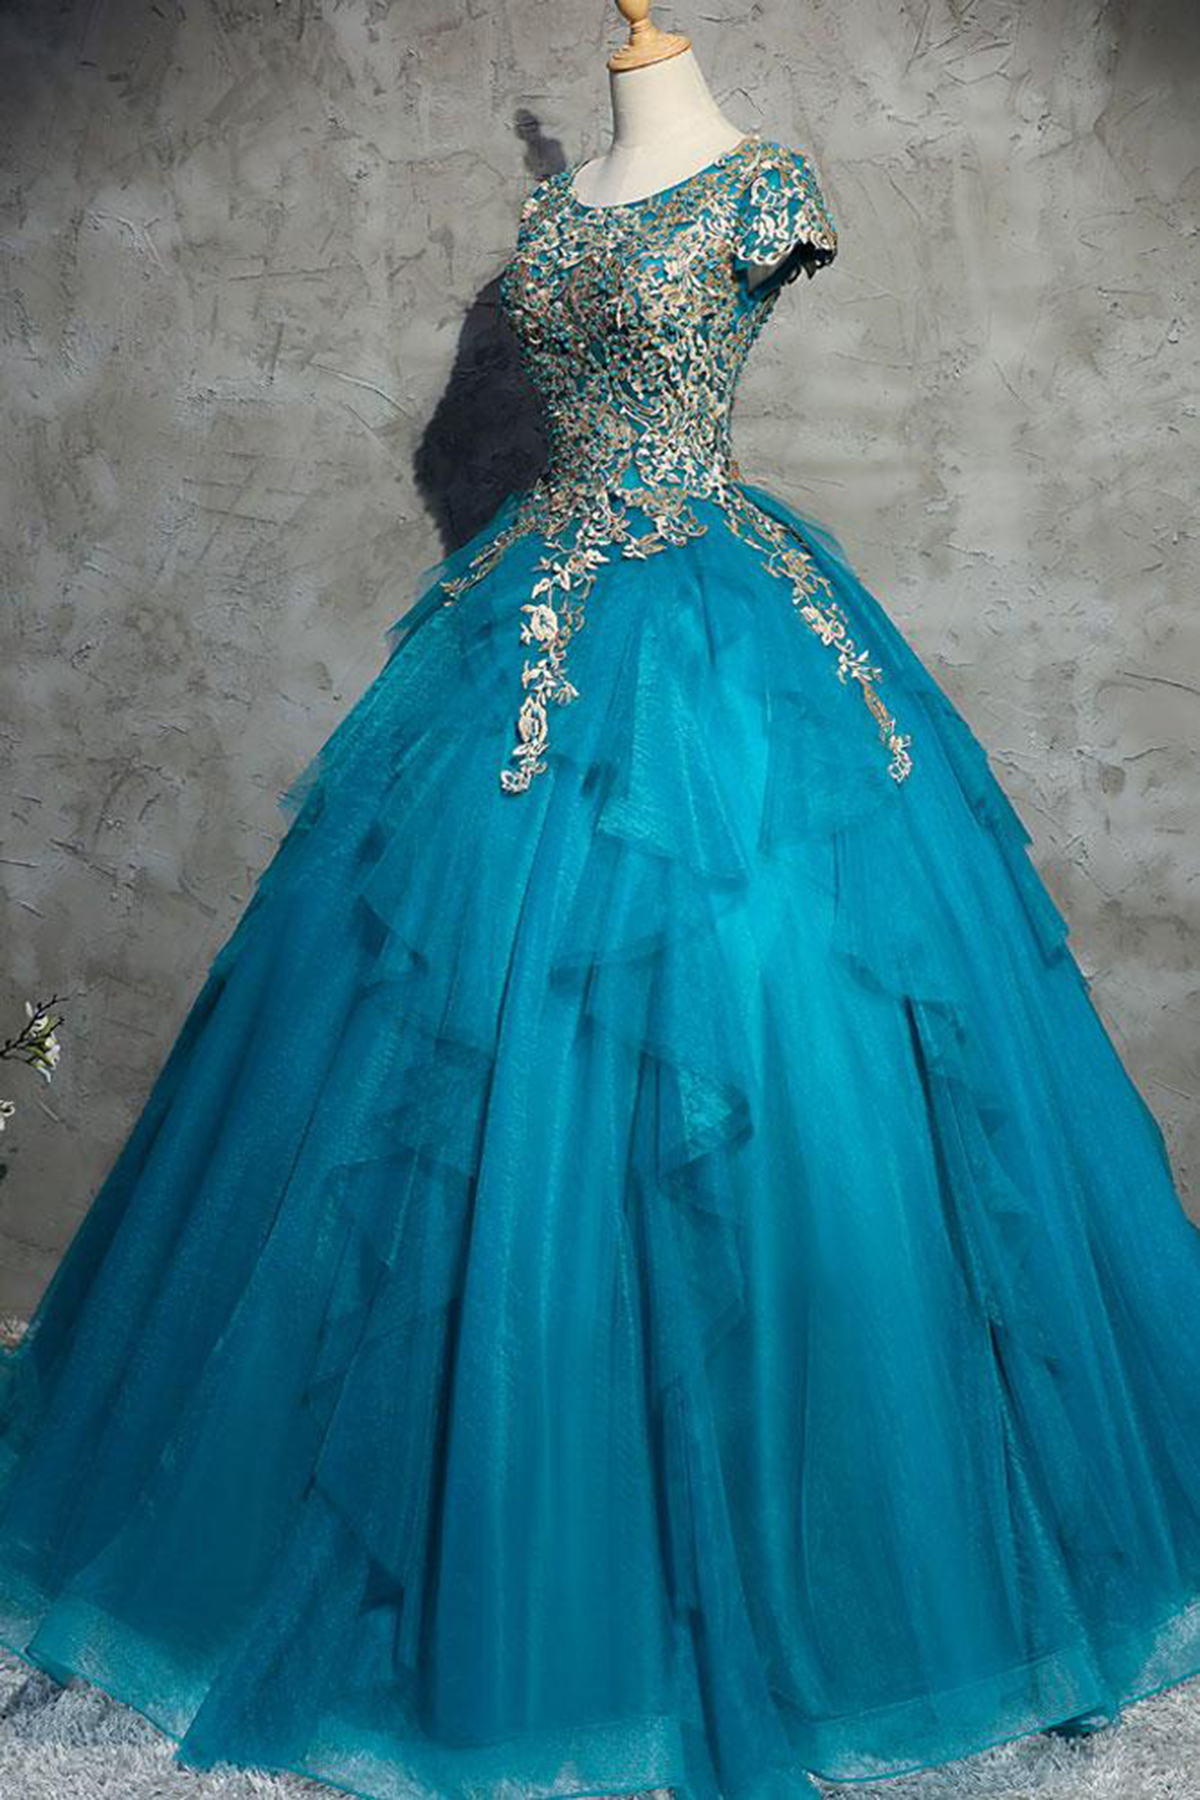 ab5be38427 Unique Blue Tulle Lace Top Round Neck Winter Formal Prom Dresses ...